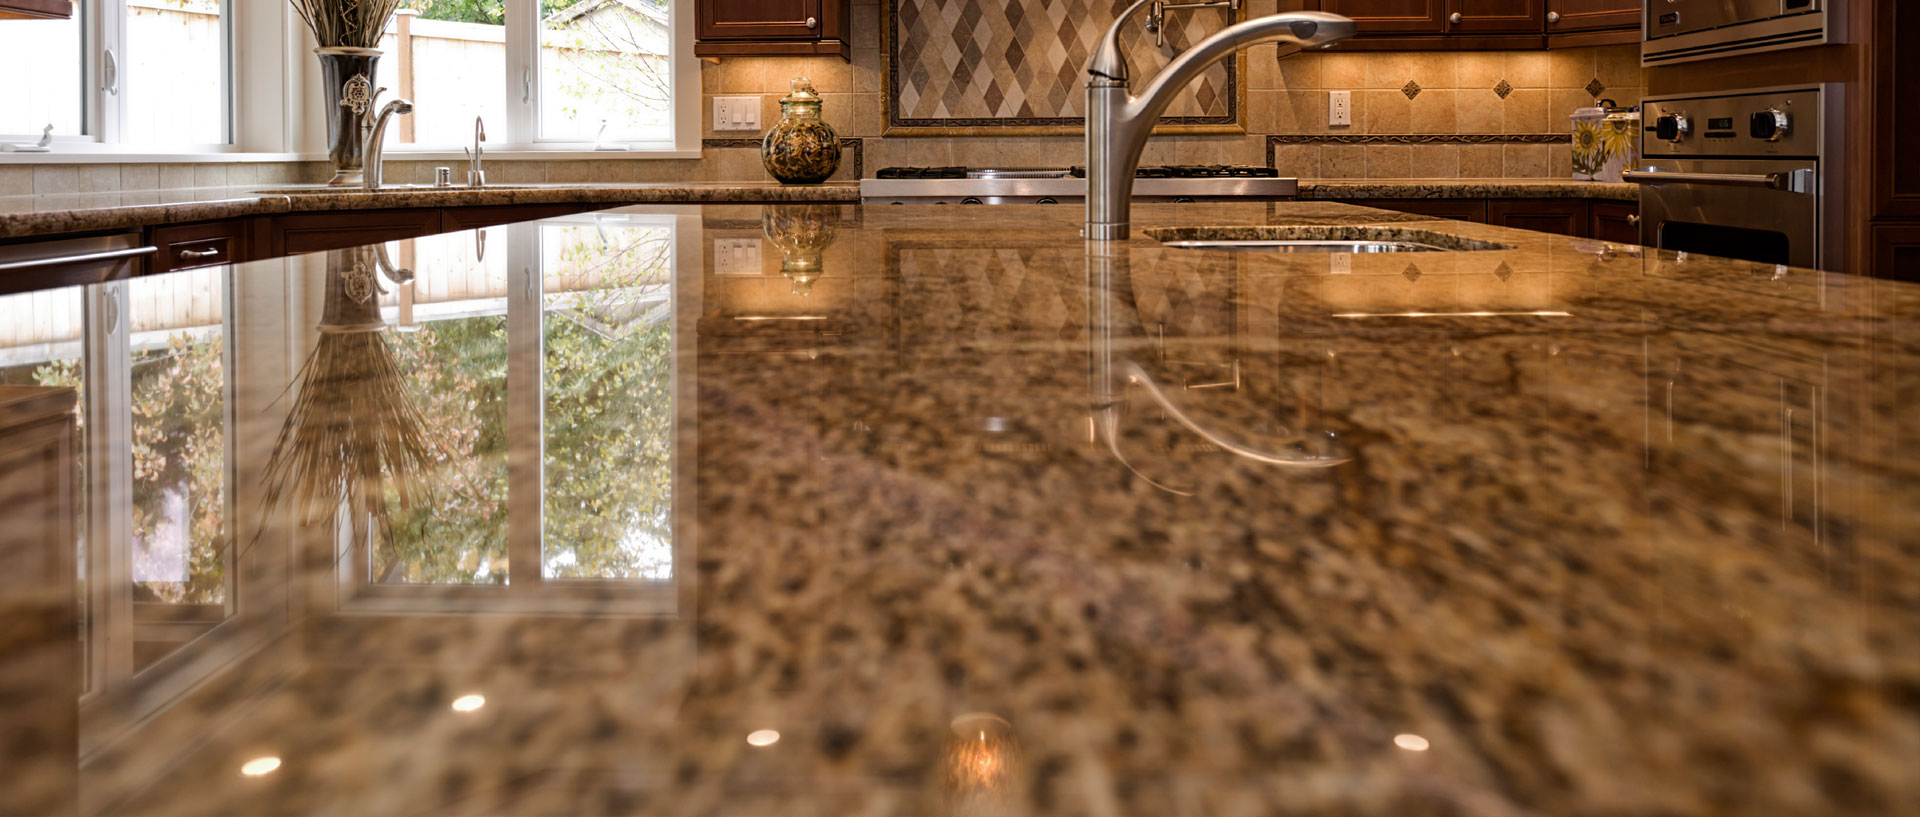 Best Rated Countertops Which Countertop Will Hold Up Better In The Kitchen And